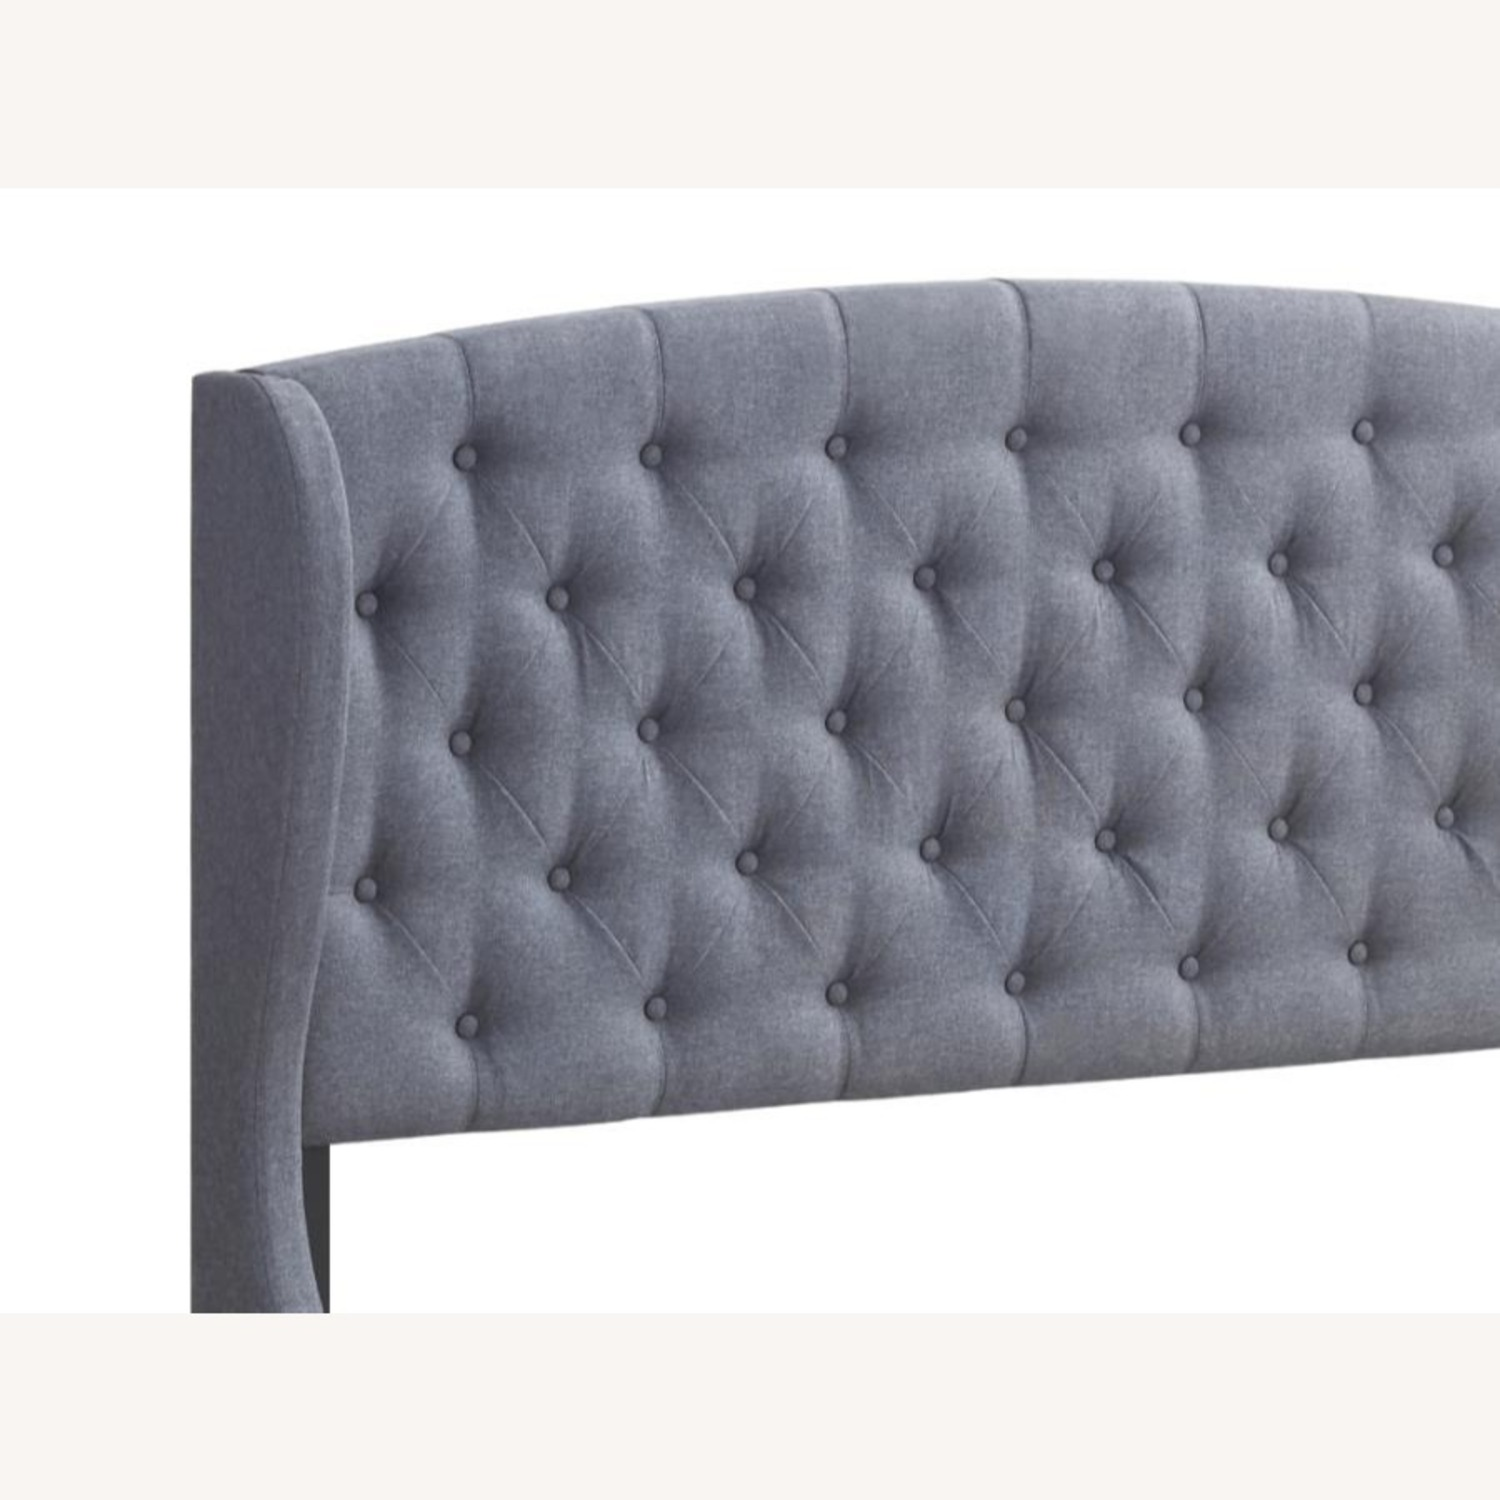 Full Bed In Grey Fabric W/ Demi-Wing Headboard - image-1